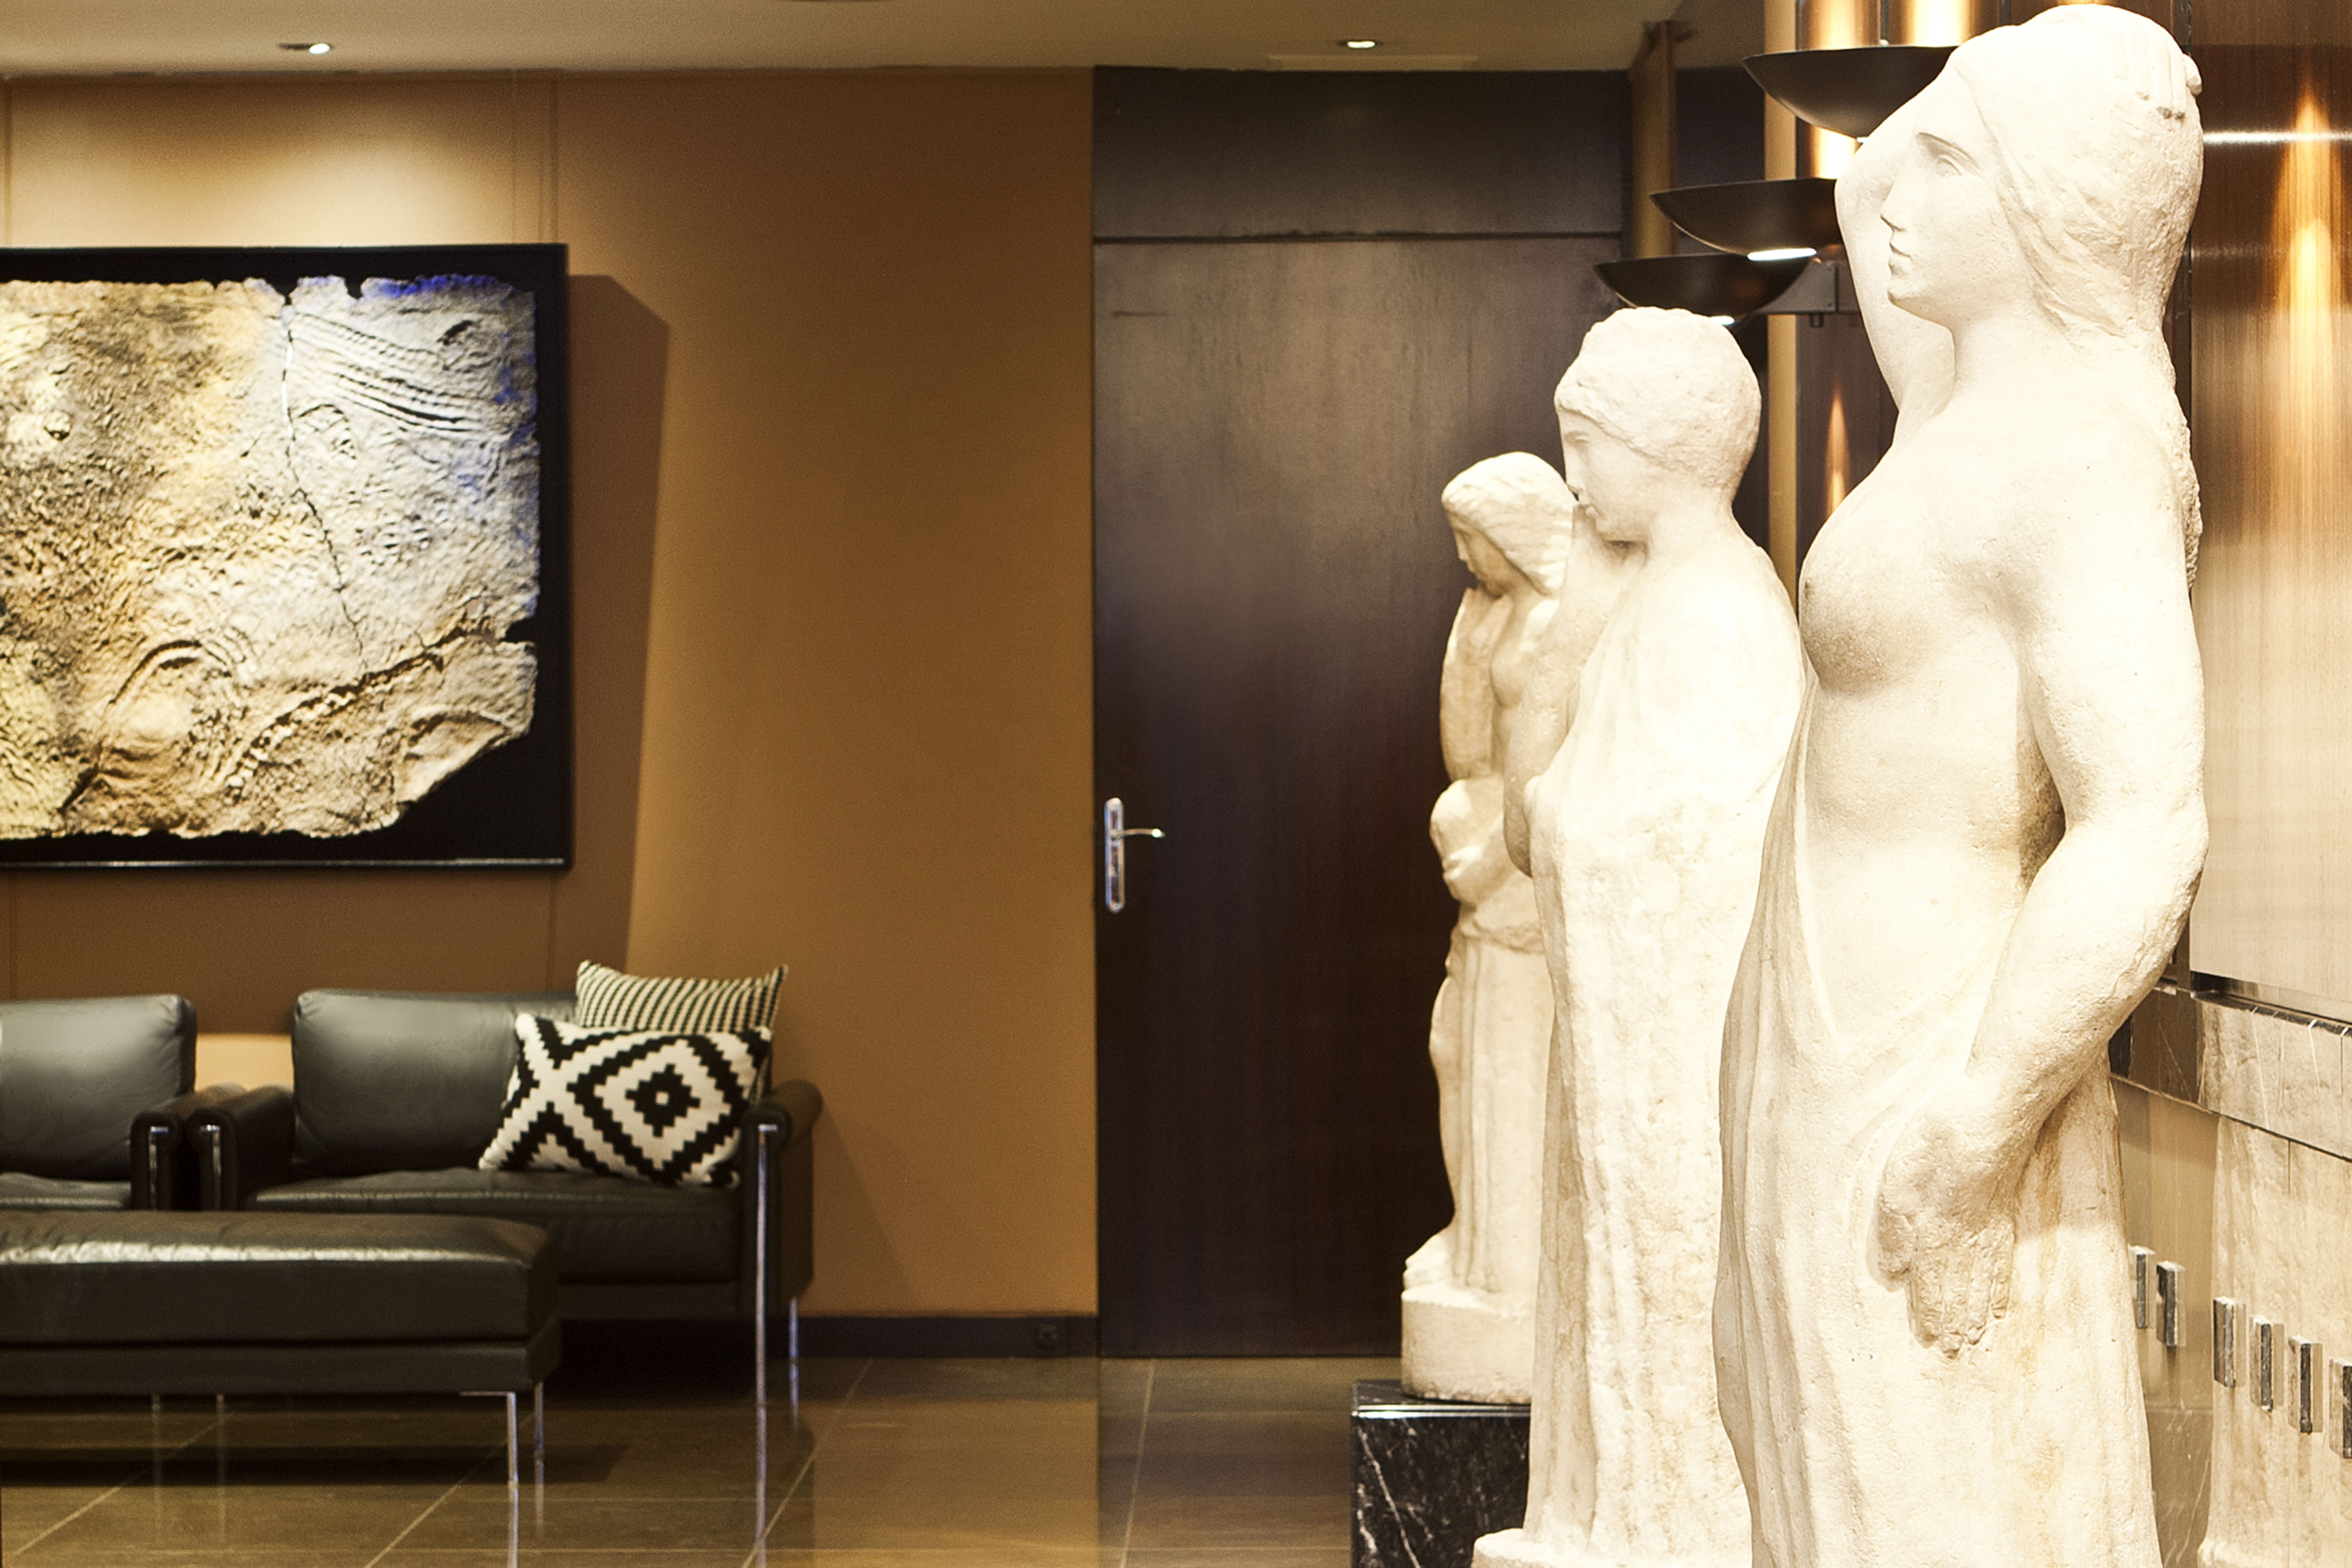 Muses Statues - Hotel Derby